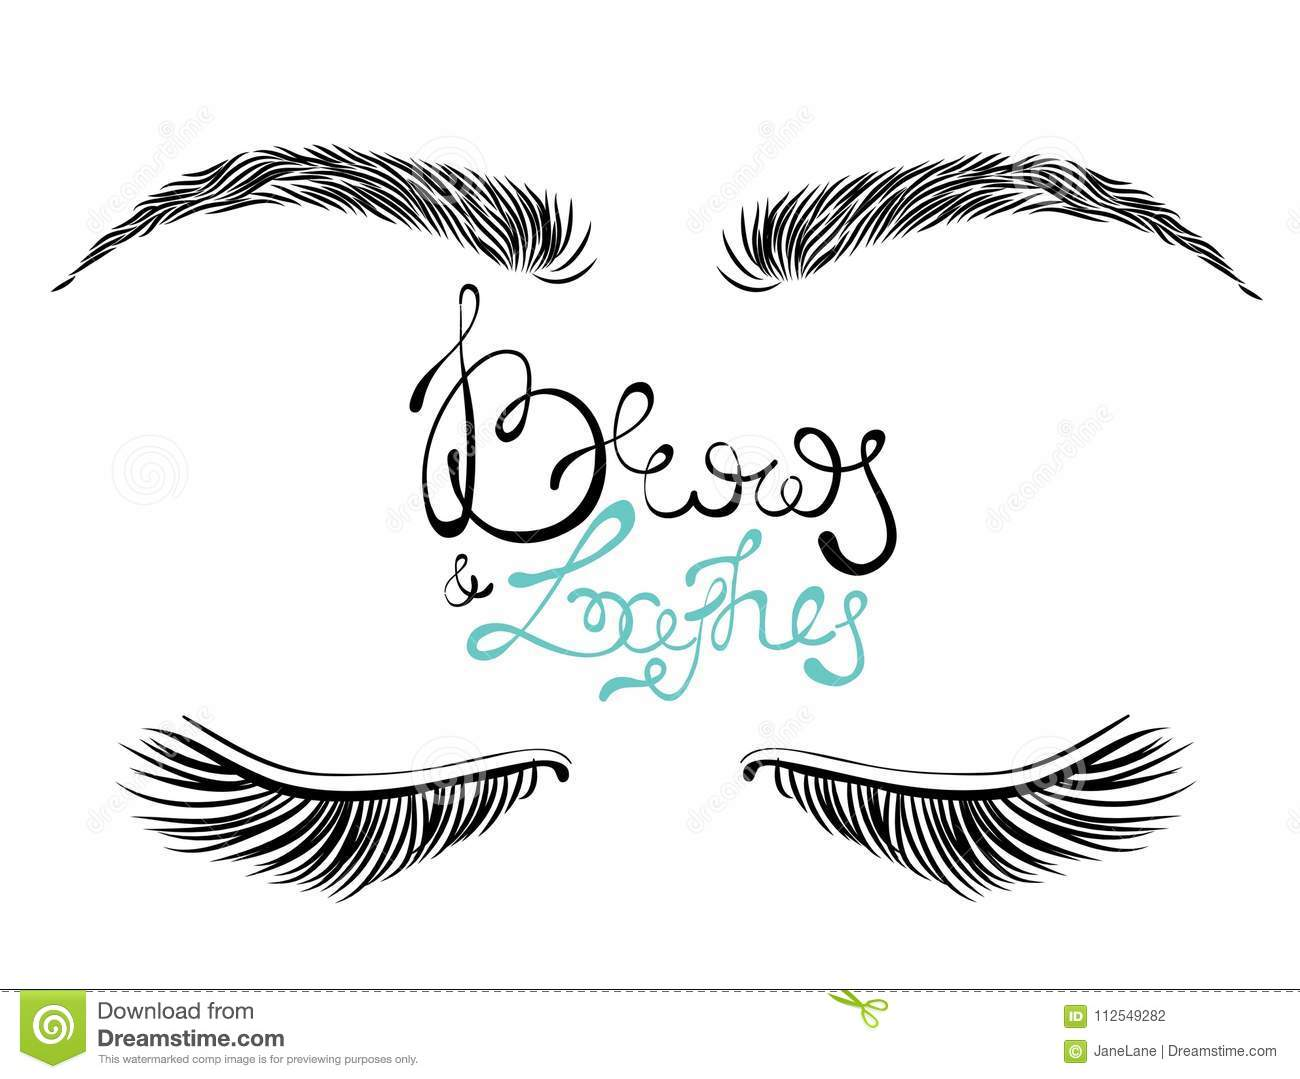 579f0f51f1a Royalty-Free Vector. Illustration of beautiful female long eyelashes and  brows